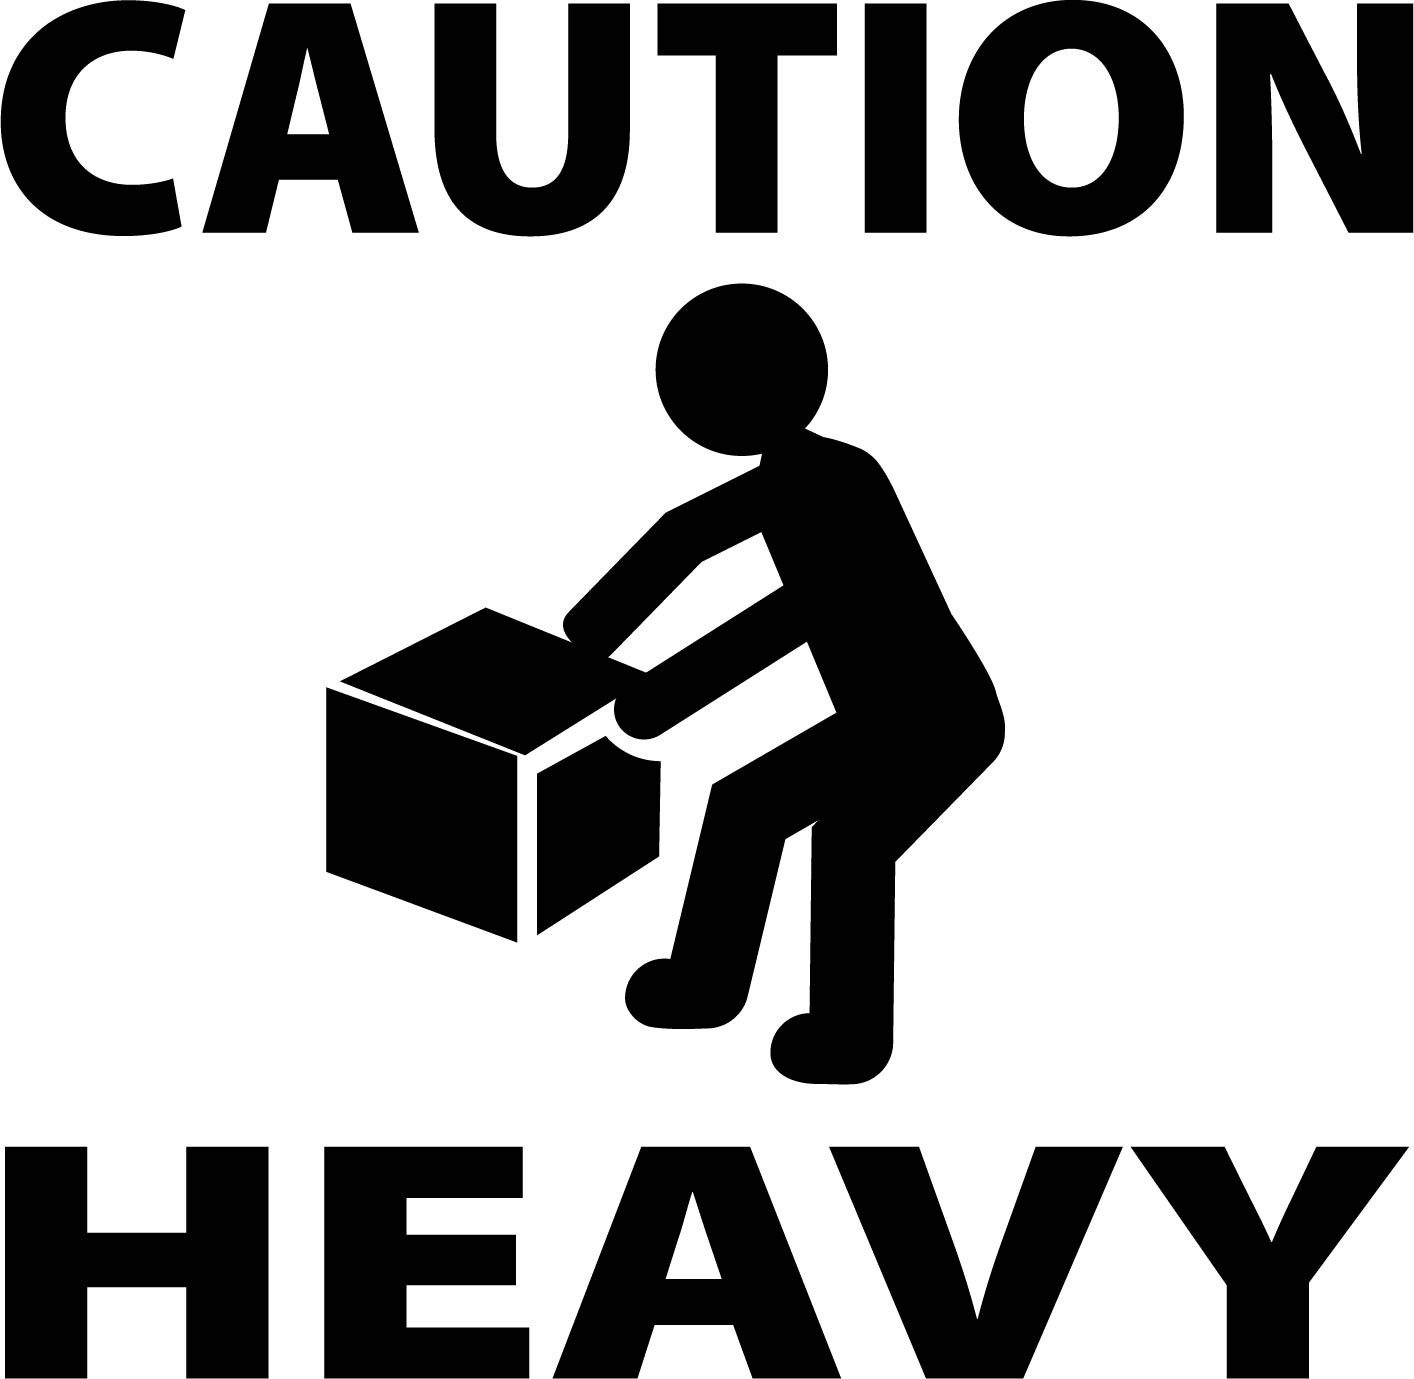 Stencil -  U0026quot Caution Heavy U0026quot